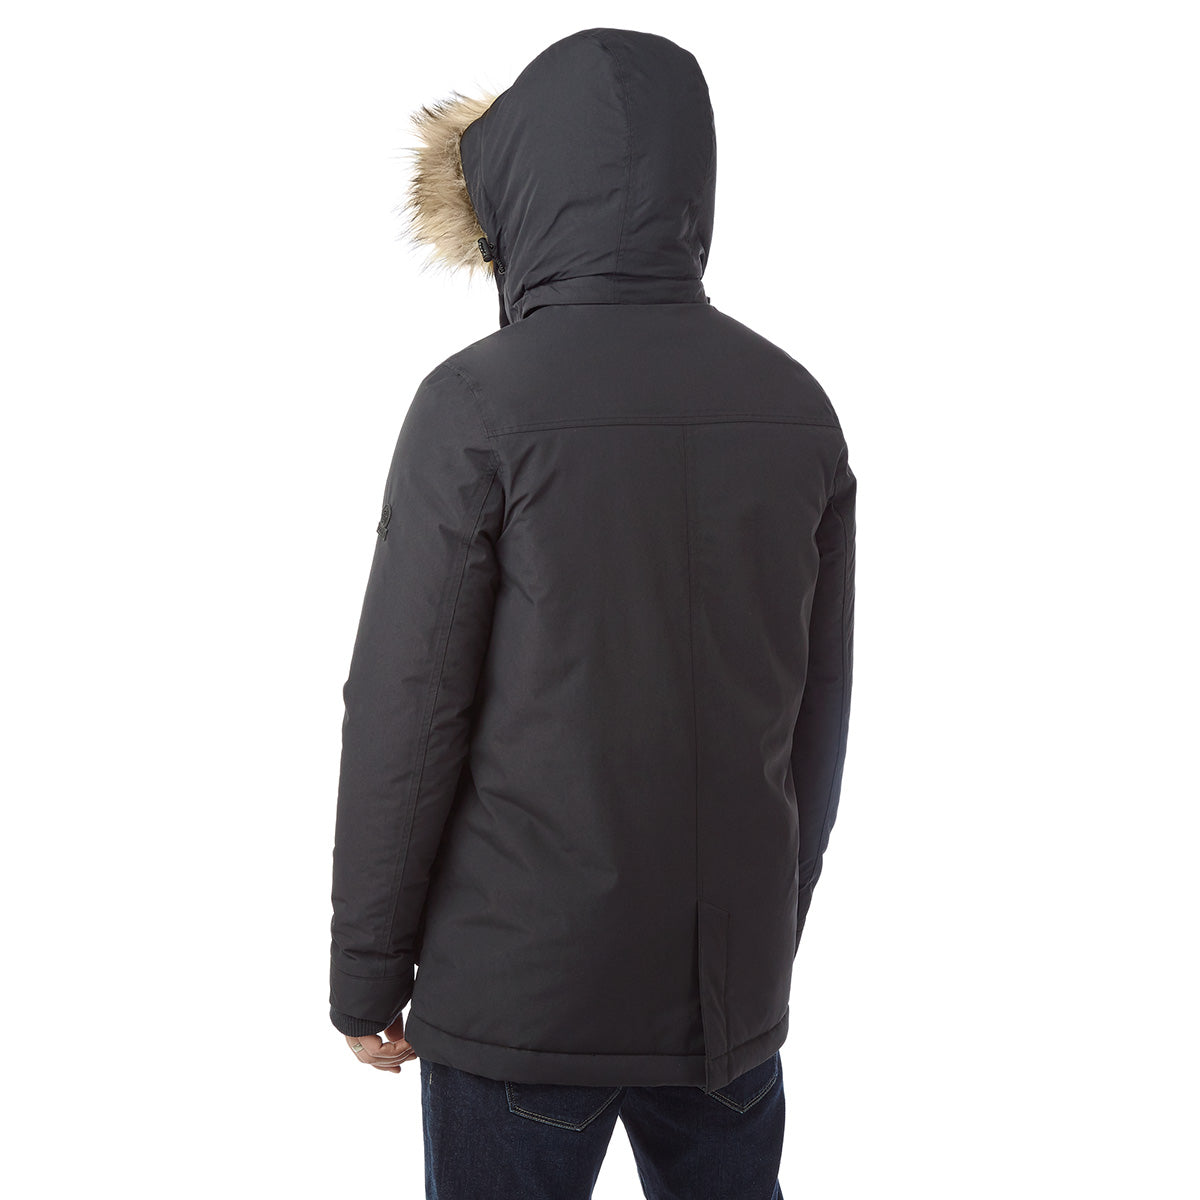 Essential Mens Waterproof Jacket - Black image 4